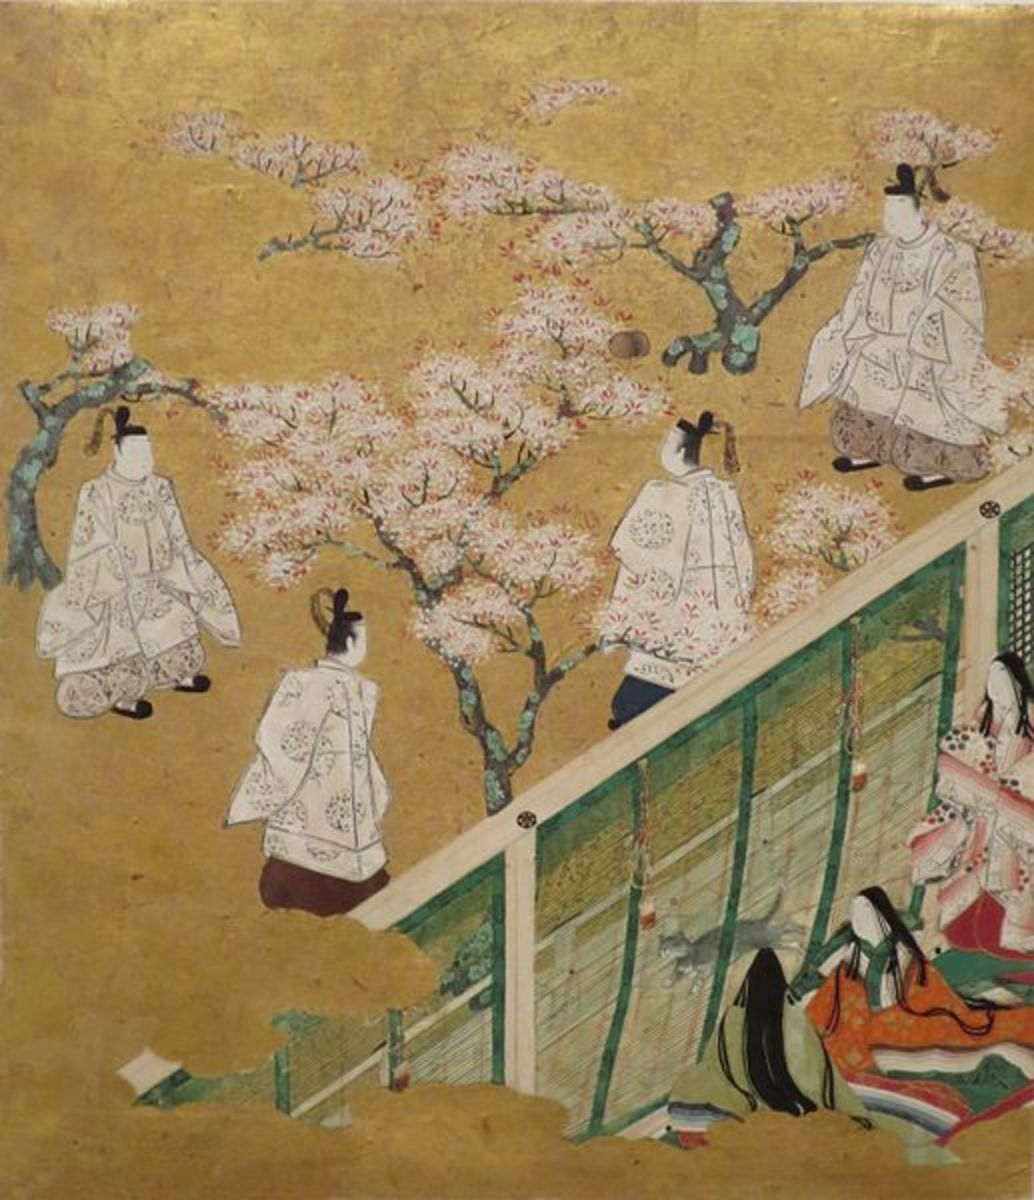 Lady Sarashina: Writer and Lady-in-Waiting of Heian Japan